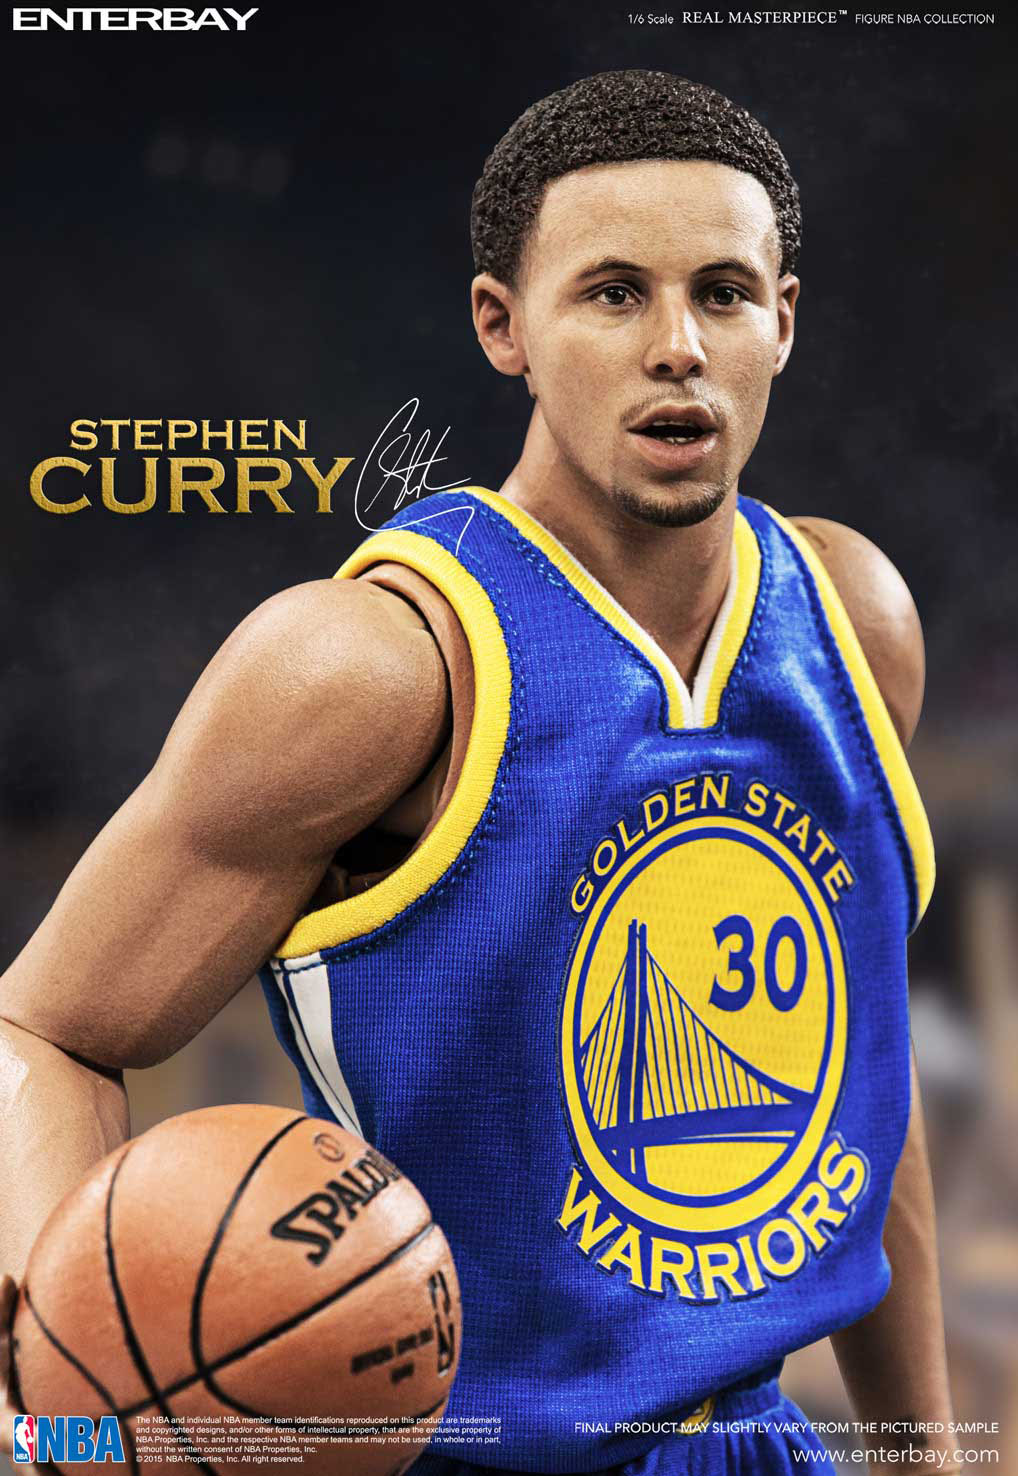 489d9167d879 NBA COLLECTION  STEPHEN CURRY REAL MASTERPIECE 1 6 Action Figure 12″  ENTERBAY